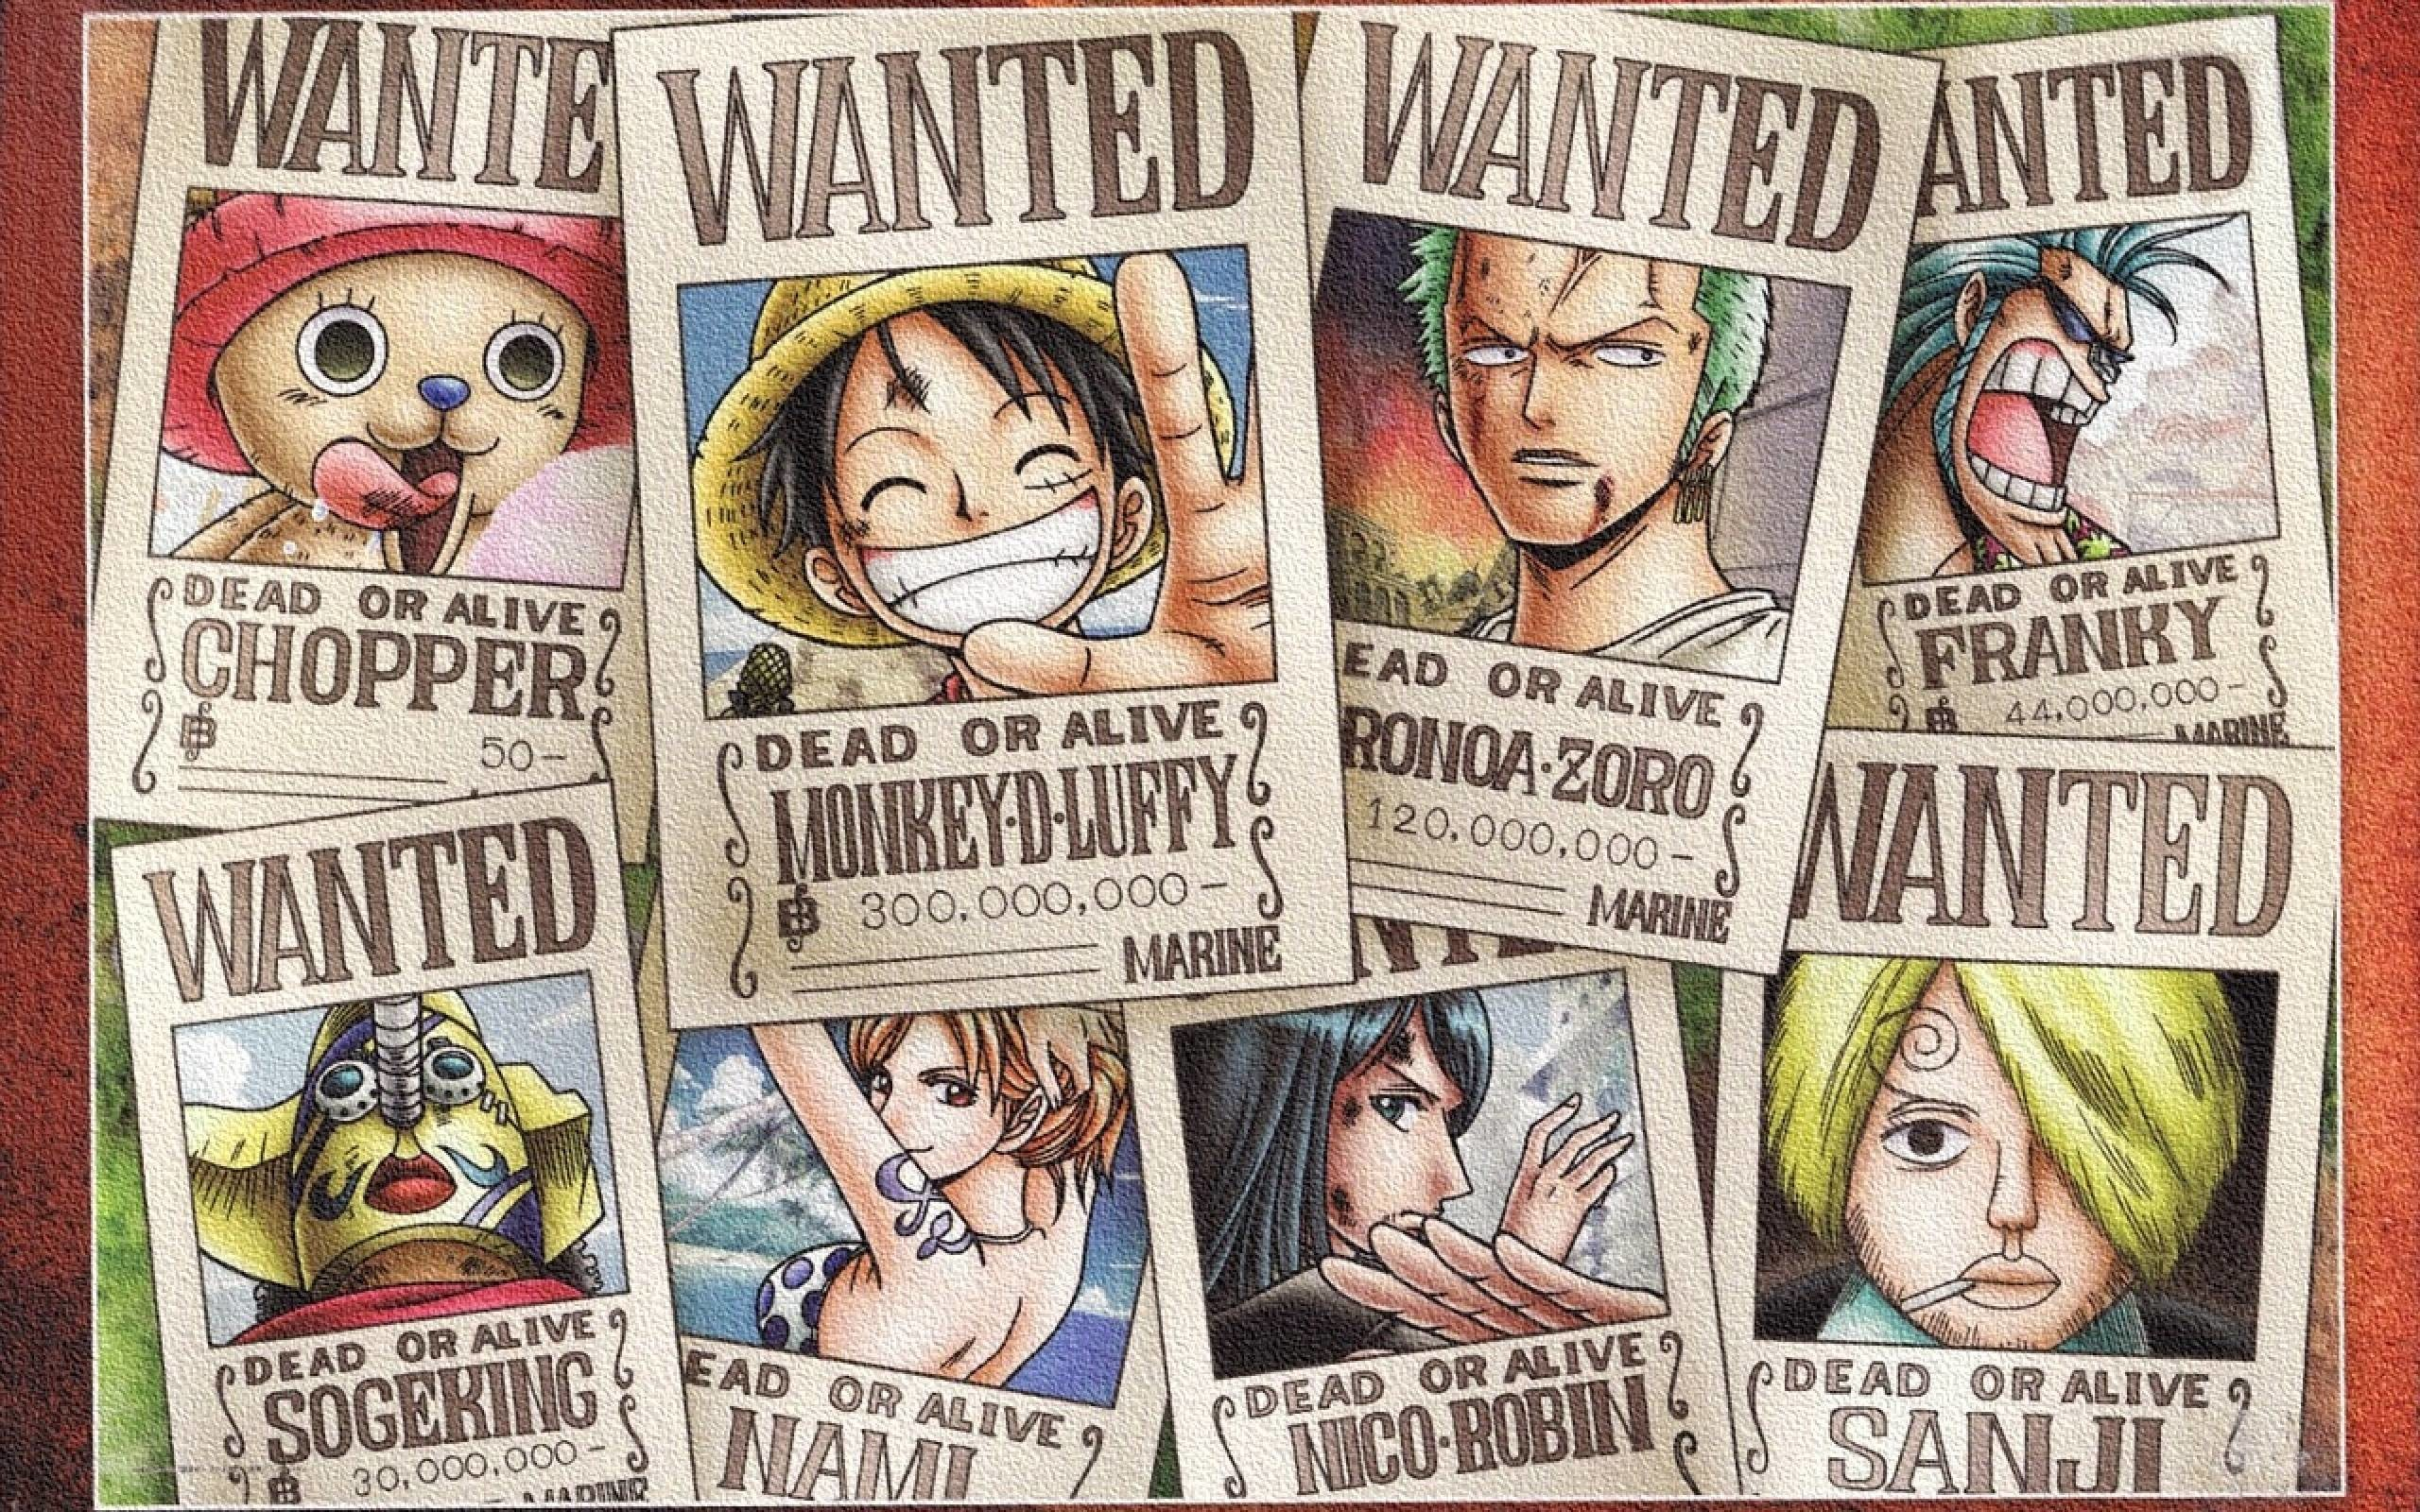 One Piece Wallpaper Wanted